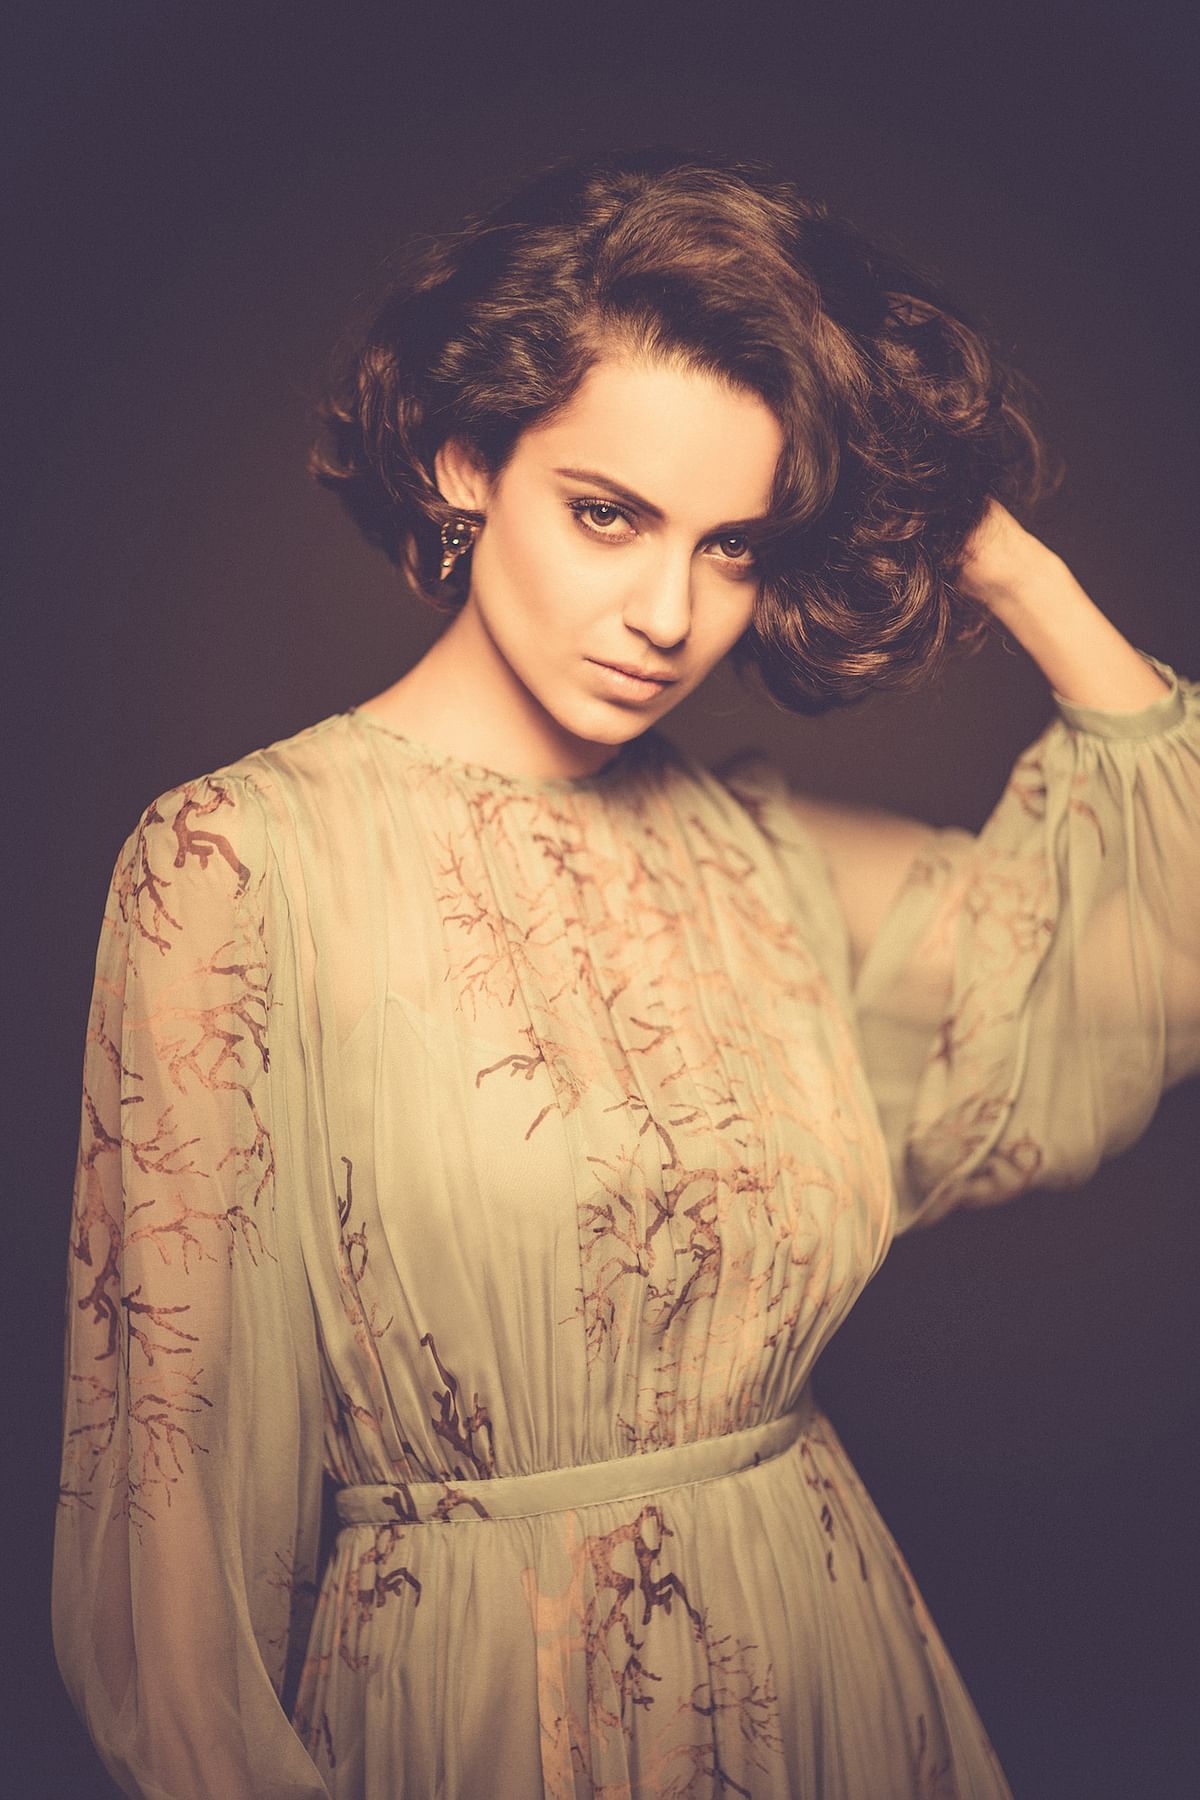 Kangana Ranaut has been in news recently over an alleged affair with Hrithik Roshan (Photo: Instagram)